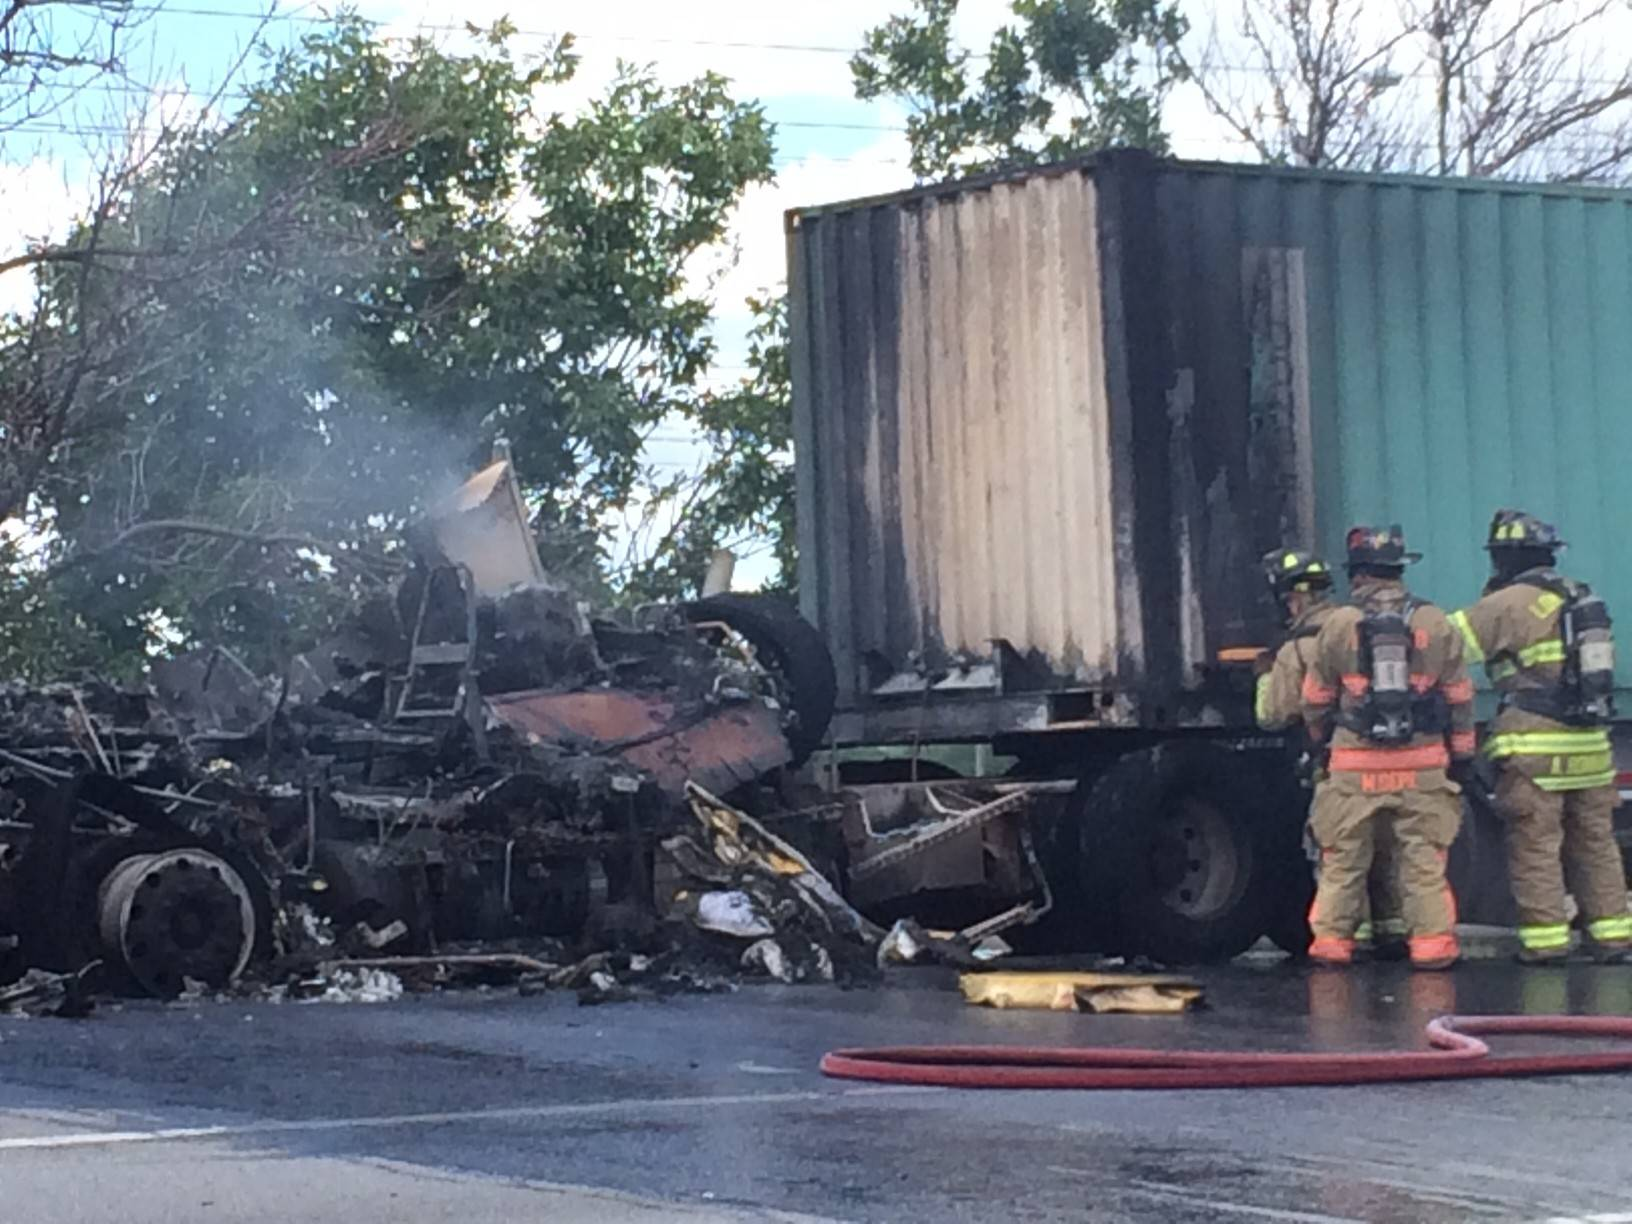 A semitrailer truck, loaded with paper, caught fire Wednesday afternoon as it traveled south on I-355 near Roosevelt Road in DuPage County.